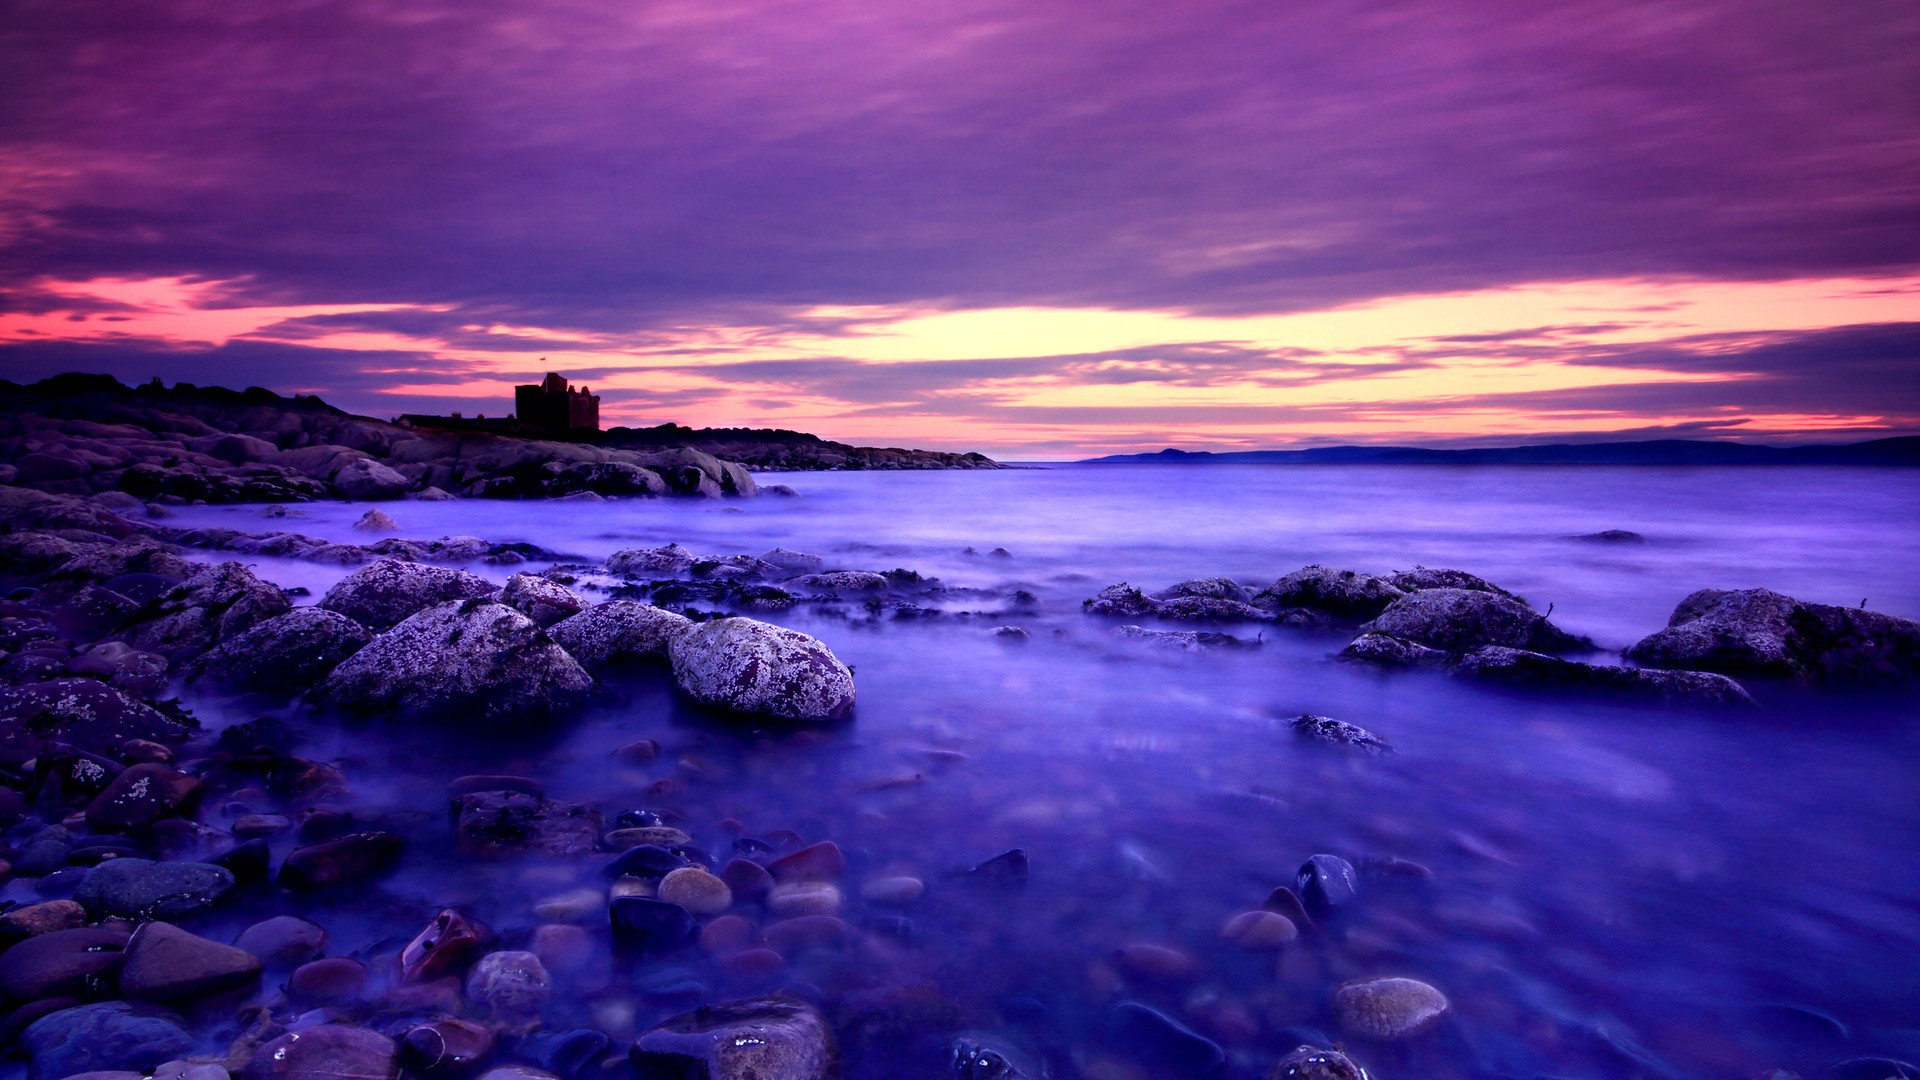 Purple Sunset Wallpapers 20 Images Wallpaperboat